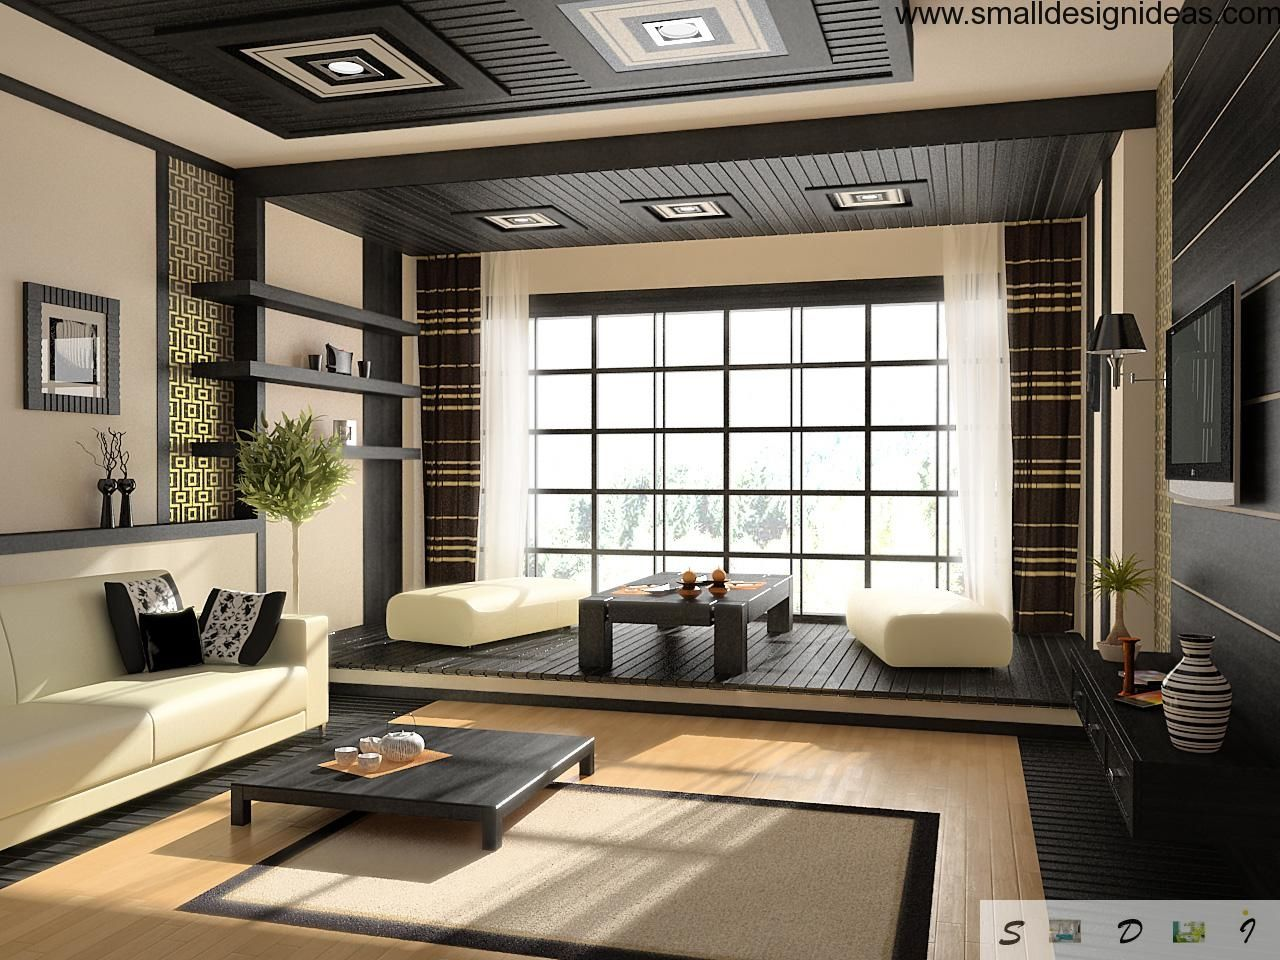 10 things to know before remodeling your interior into japanese style japanese interior design